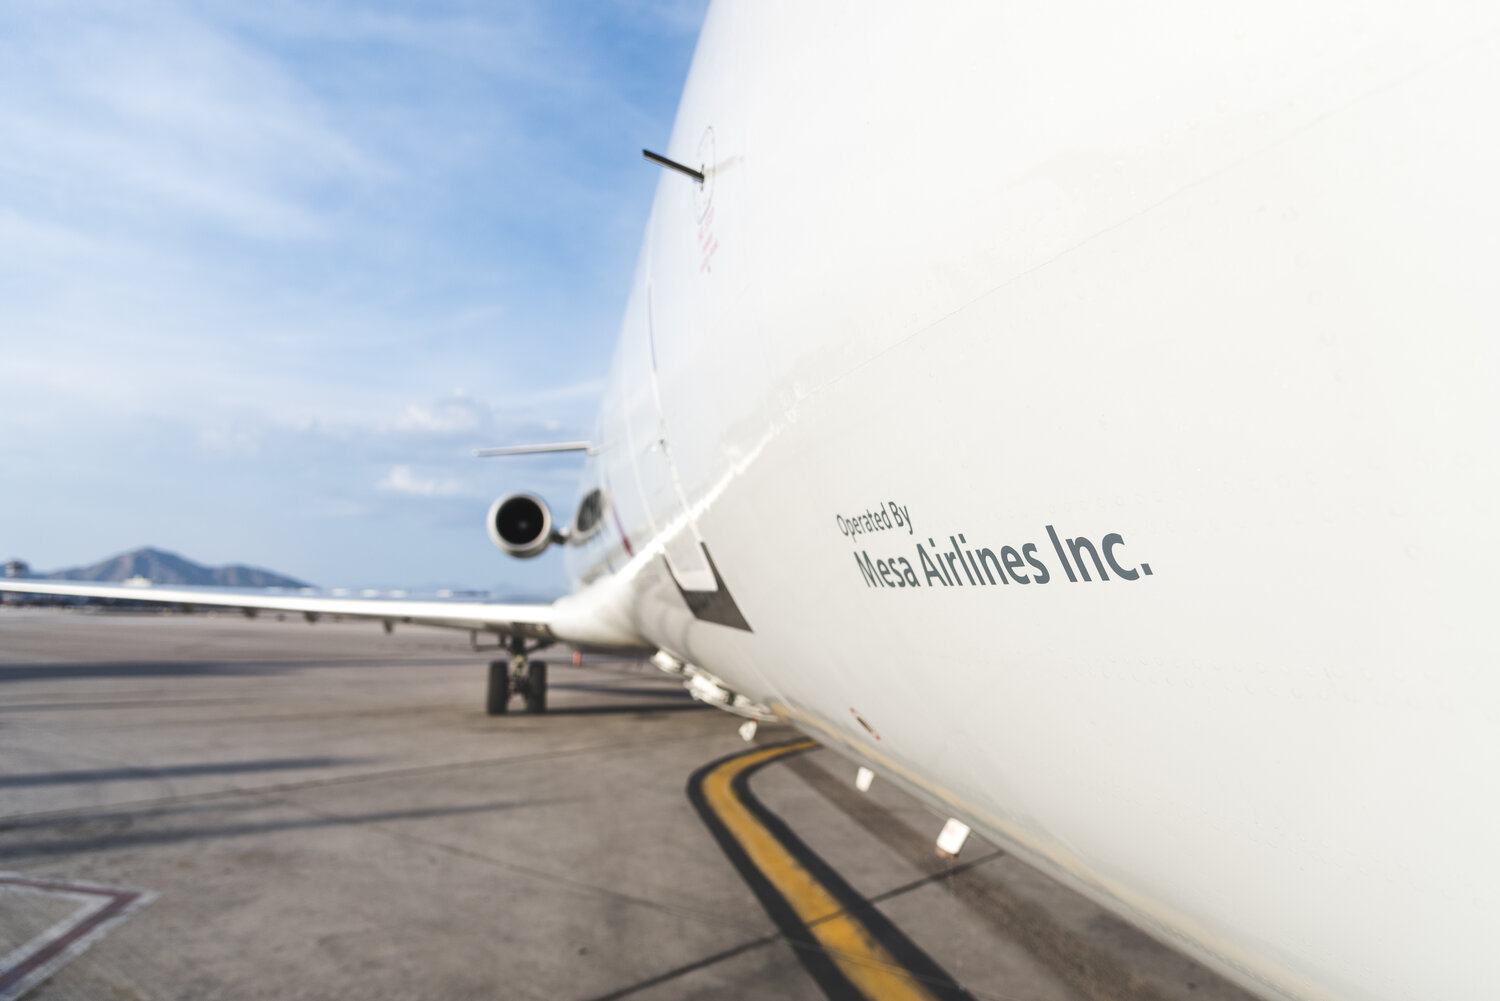 Mesa Airlines - Start Your Climb®